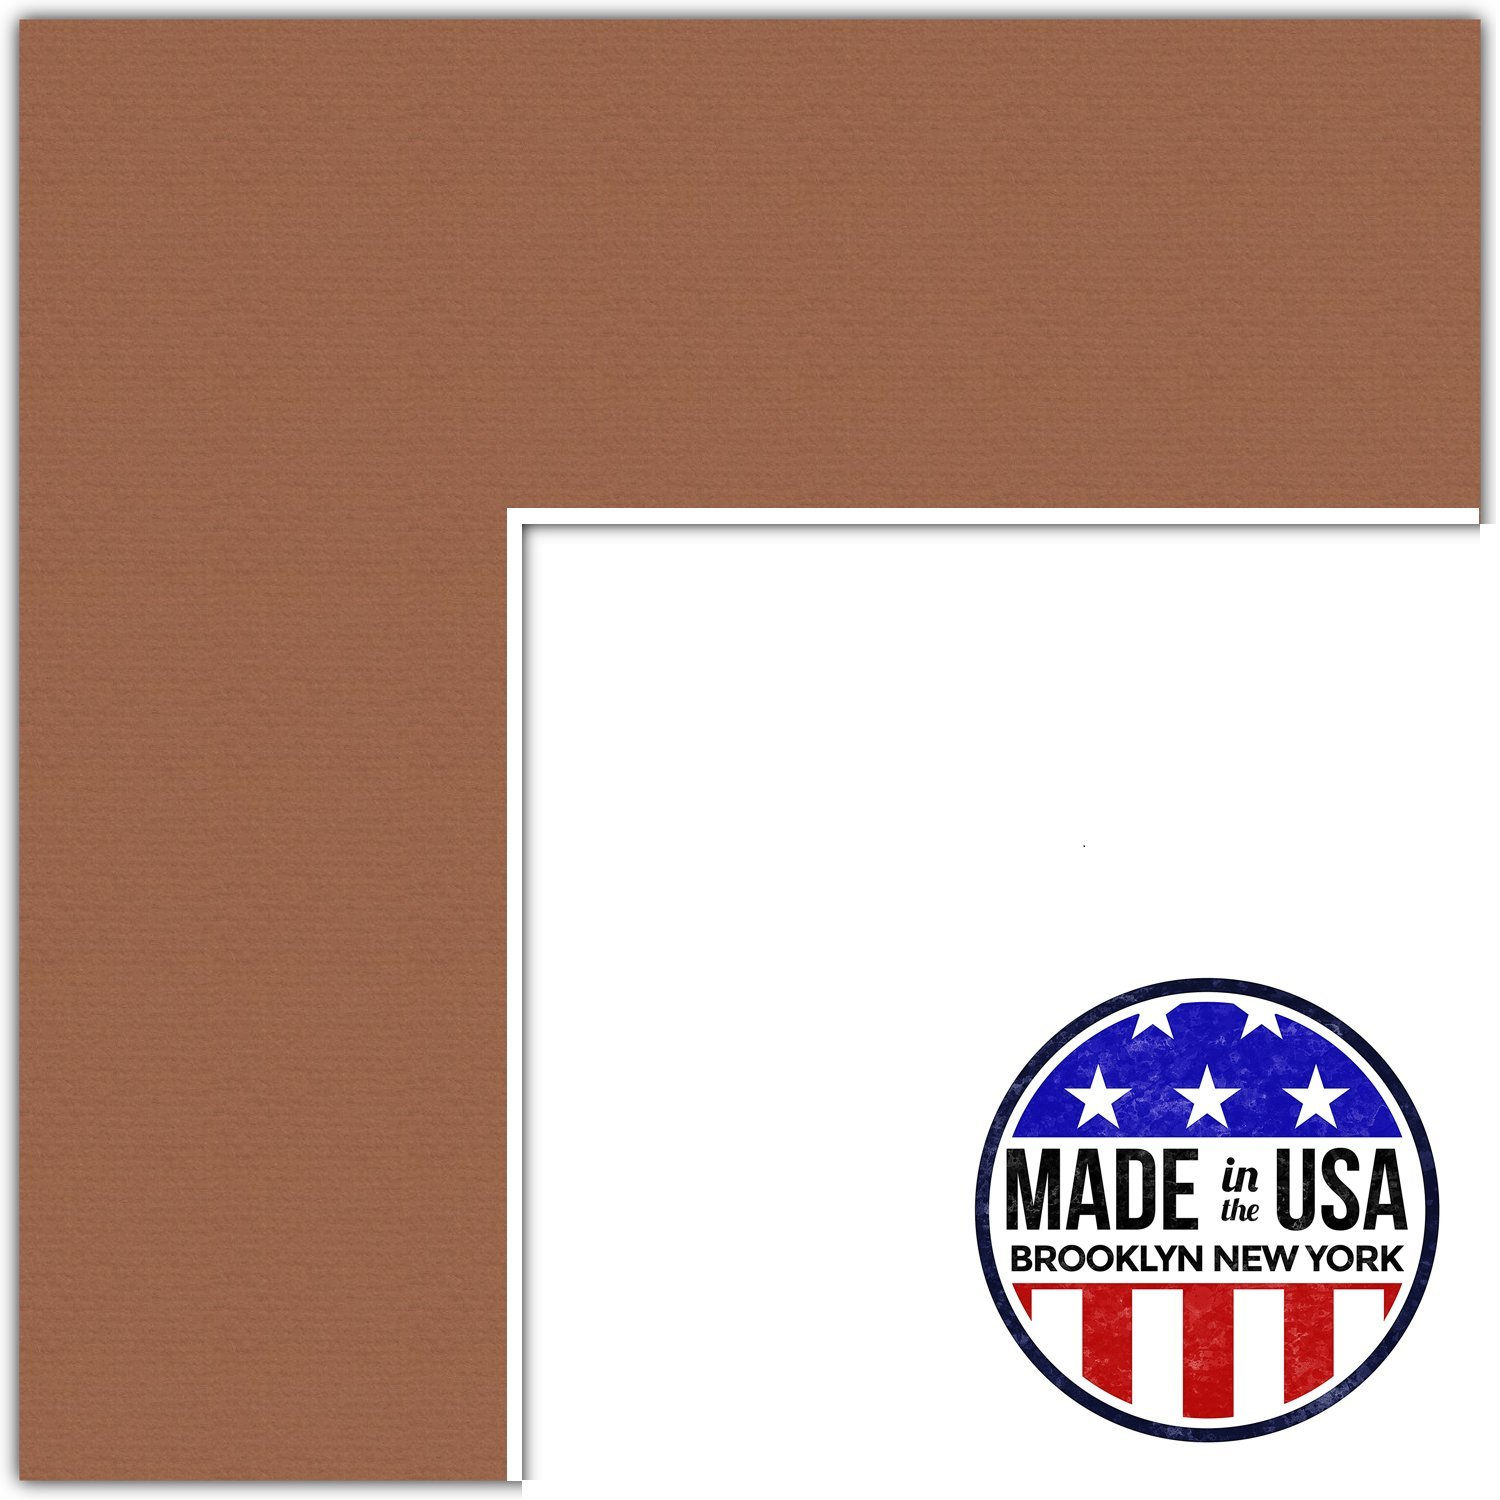 8x8 Autumn / Paloma Custom Mat for Picture Frame with 4x4 opening size (Mat Only, Frame NOT Included) ArtToFrames MAT-131-8x8-Paloma